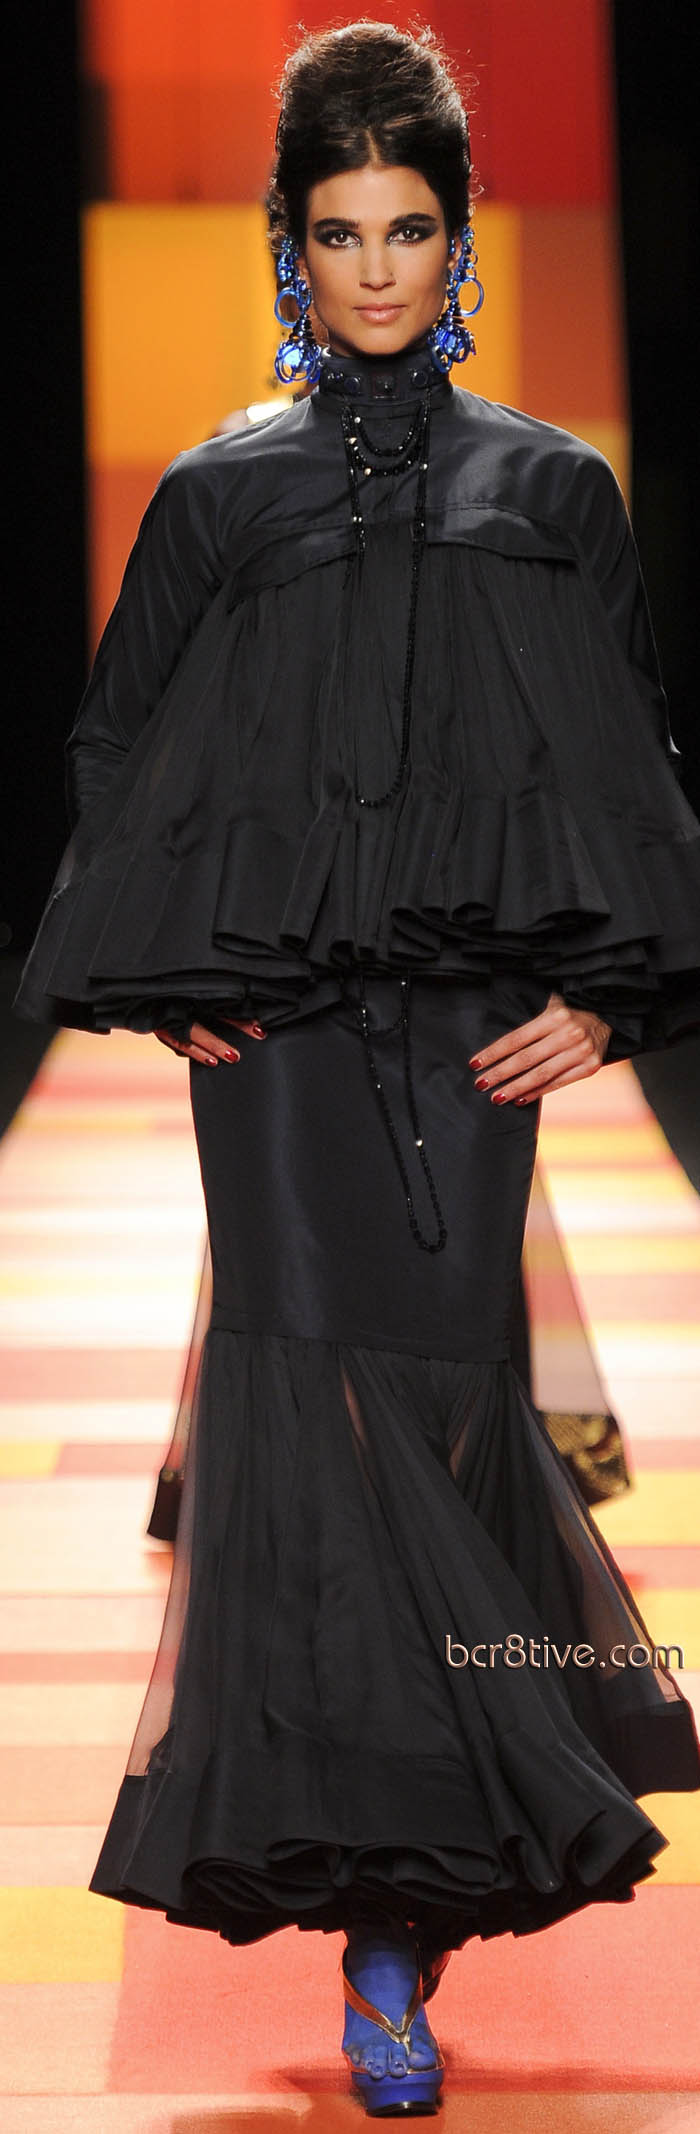 Jean Paul Gaultier 2013 Spring Summer Haute Couture